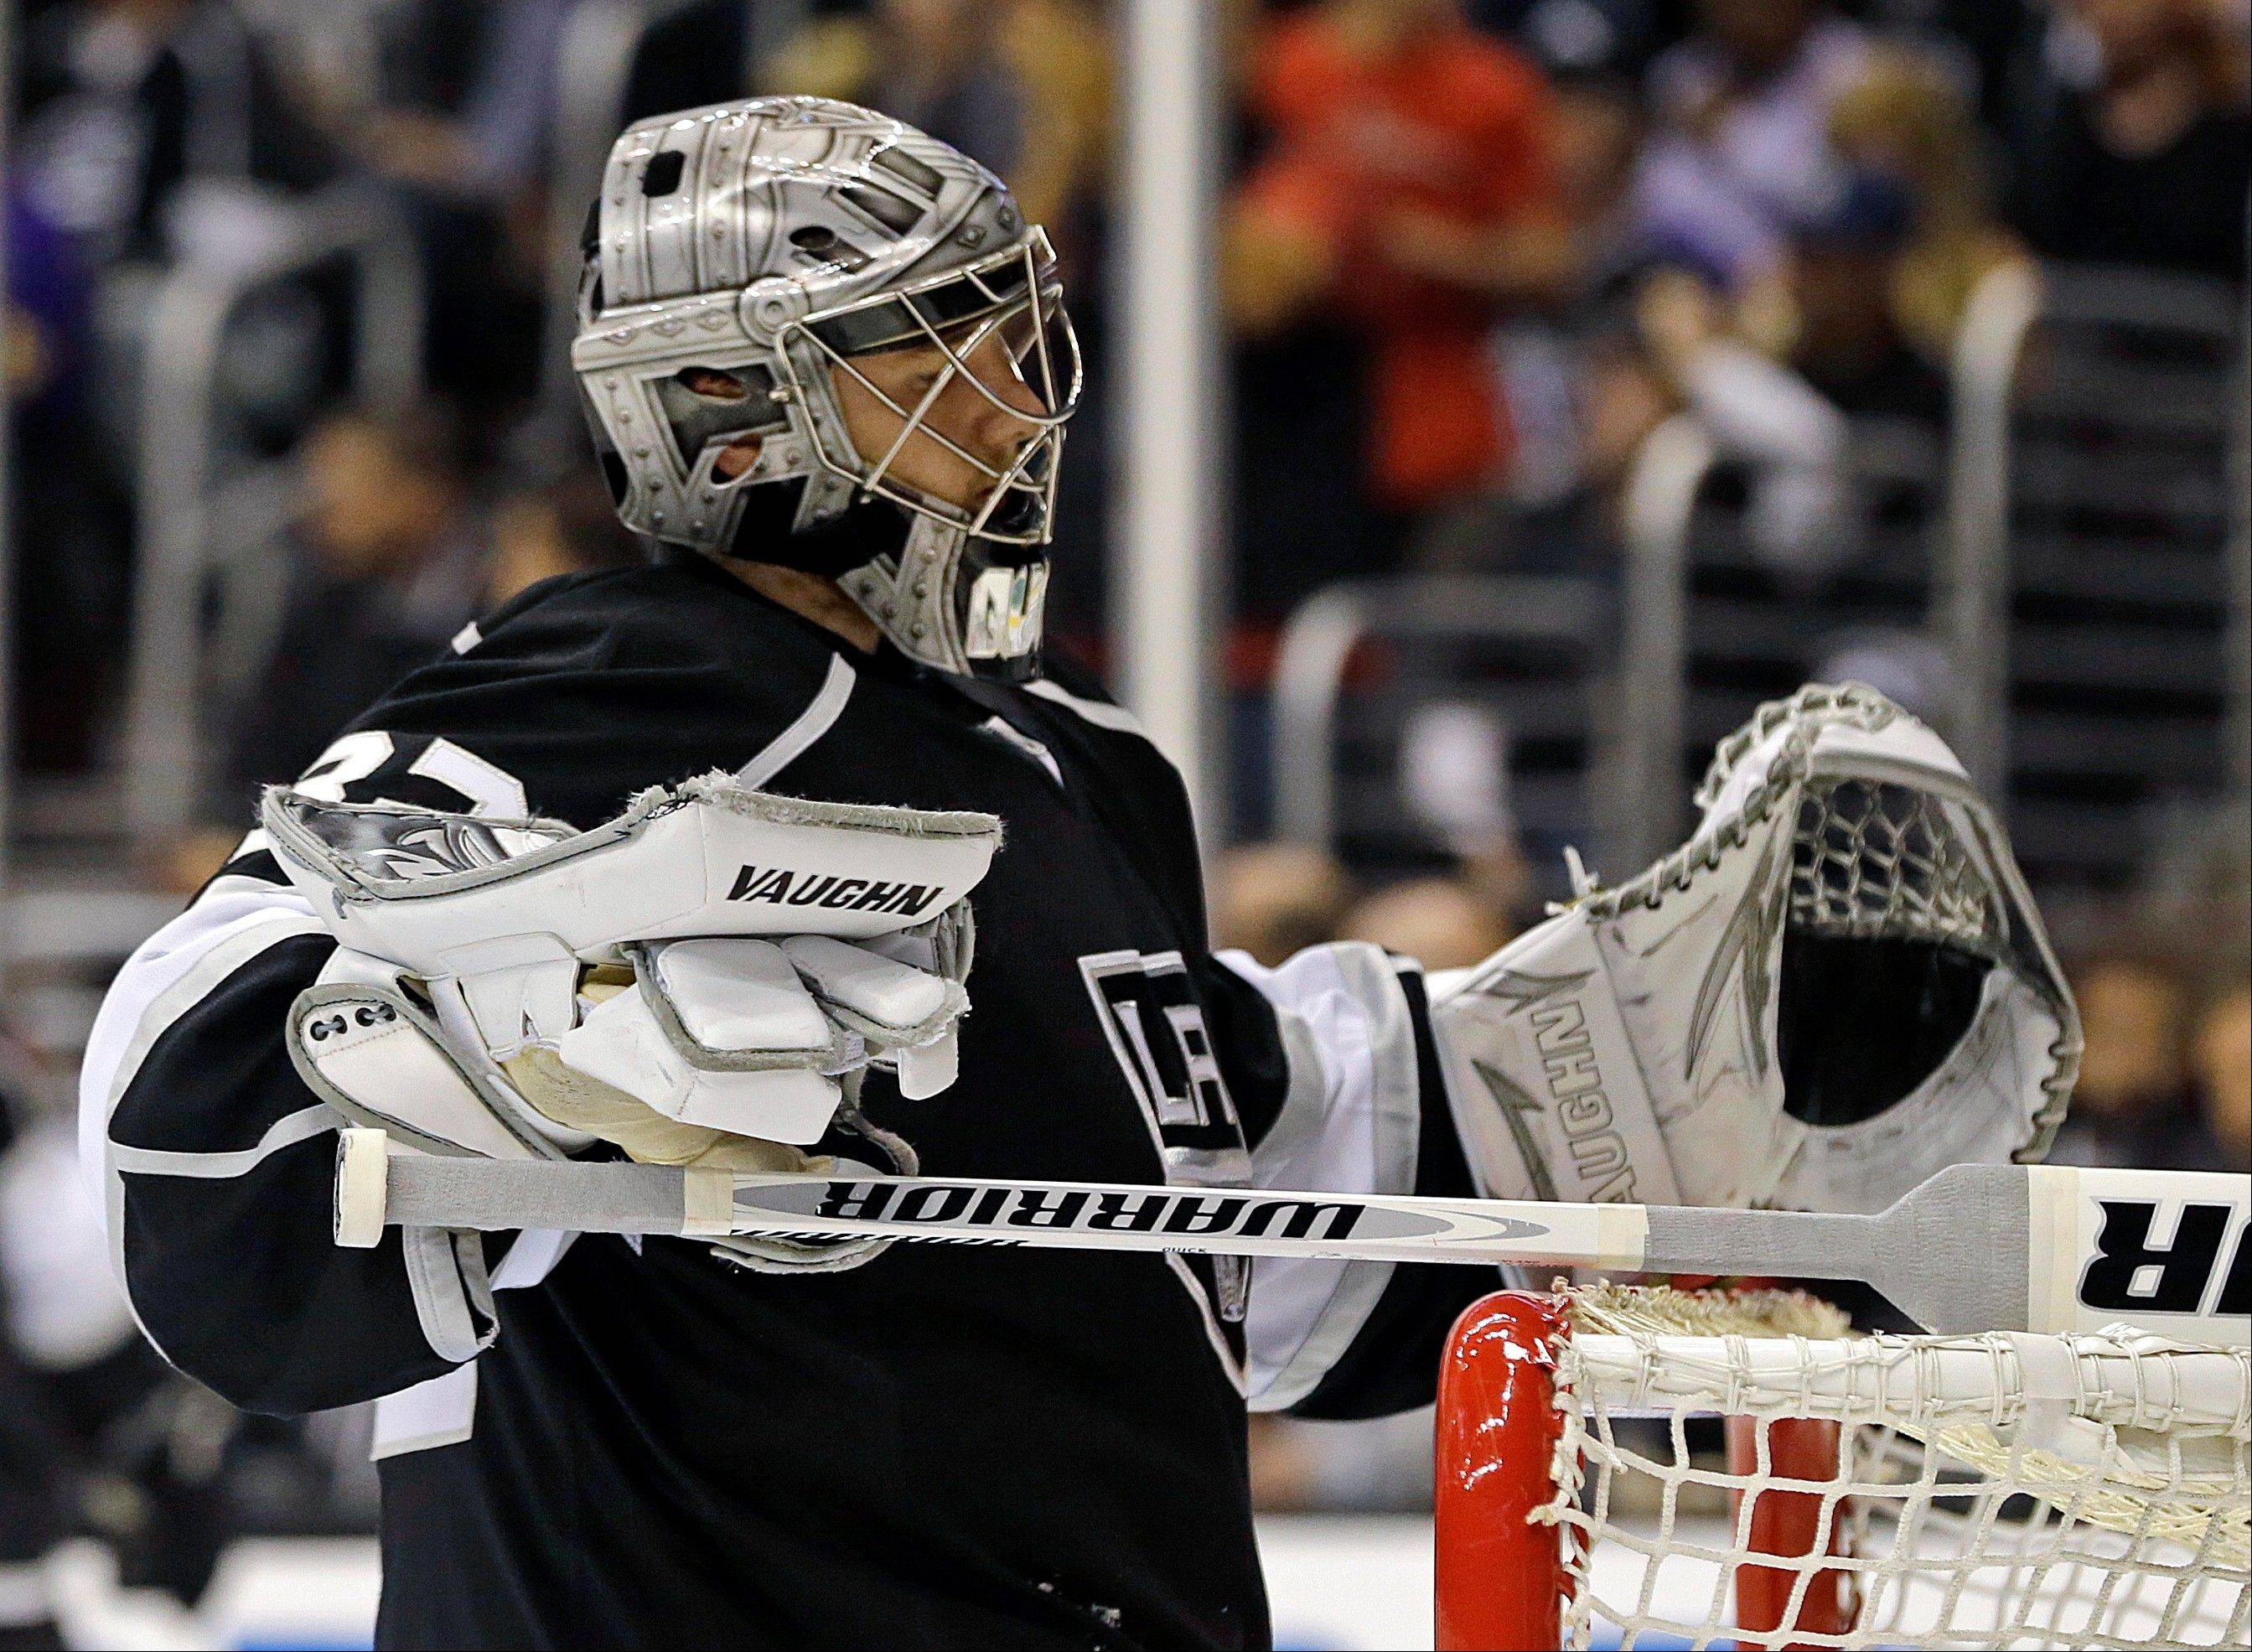 Kings goalie Jonathan Quick waits after a goal by the Chicago Blackhawks in the third period of Game 4 of the NHL hockey Stanley Cup playoffs Western Conference finals, in Los Angeles Thursday, June 6, 2013. The Blackhawks won 3-2.